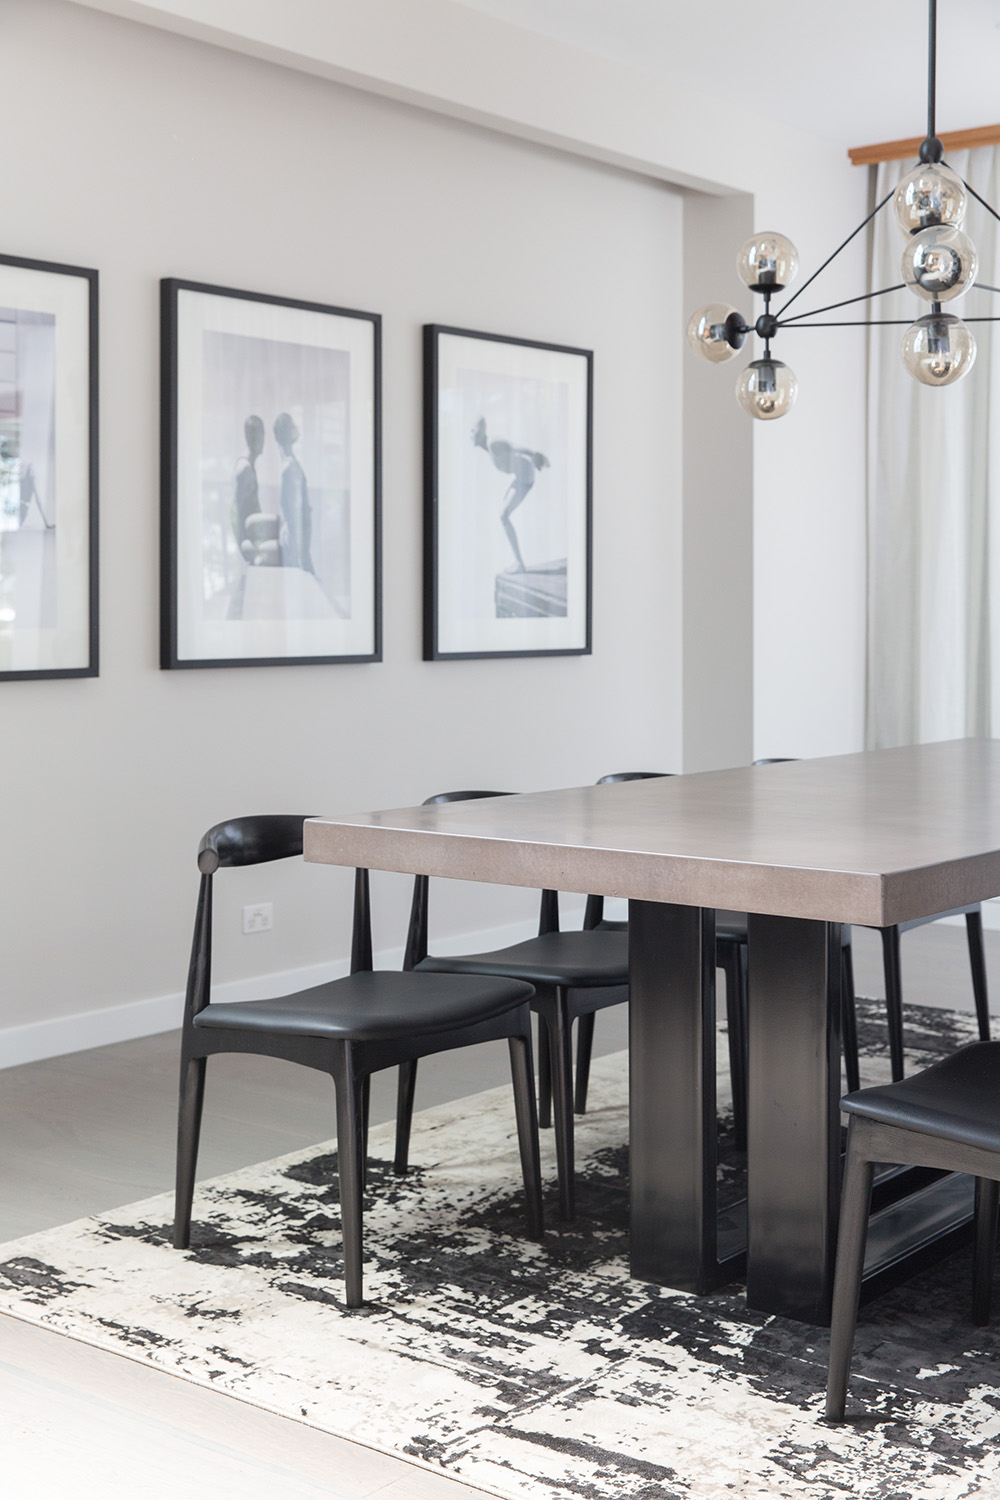 beni-concrete-dining-table-4.jpg